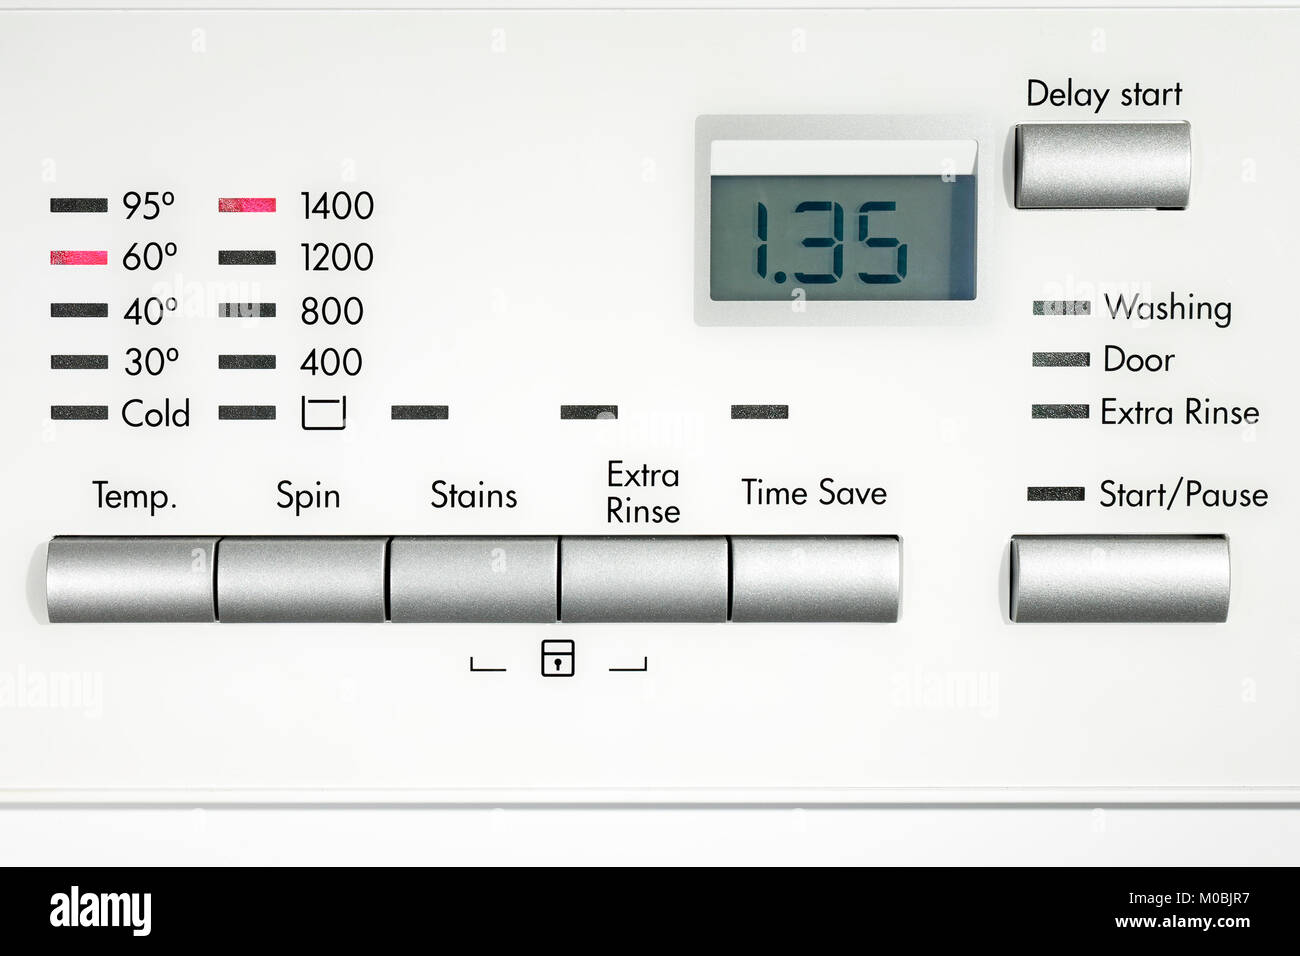 Washing machine set to 60 degree wash and 1400RPM spin speed 1hr 35min 1.35hrs - Stock Image